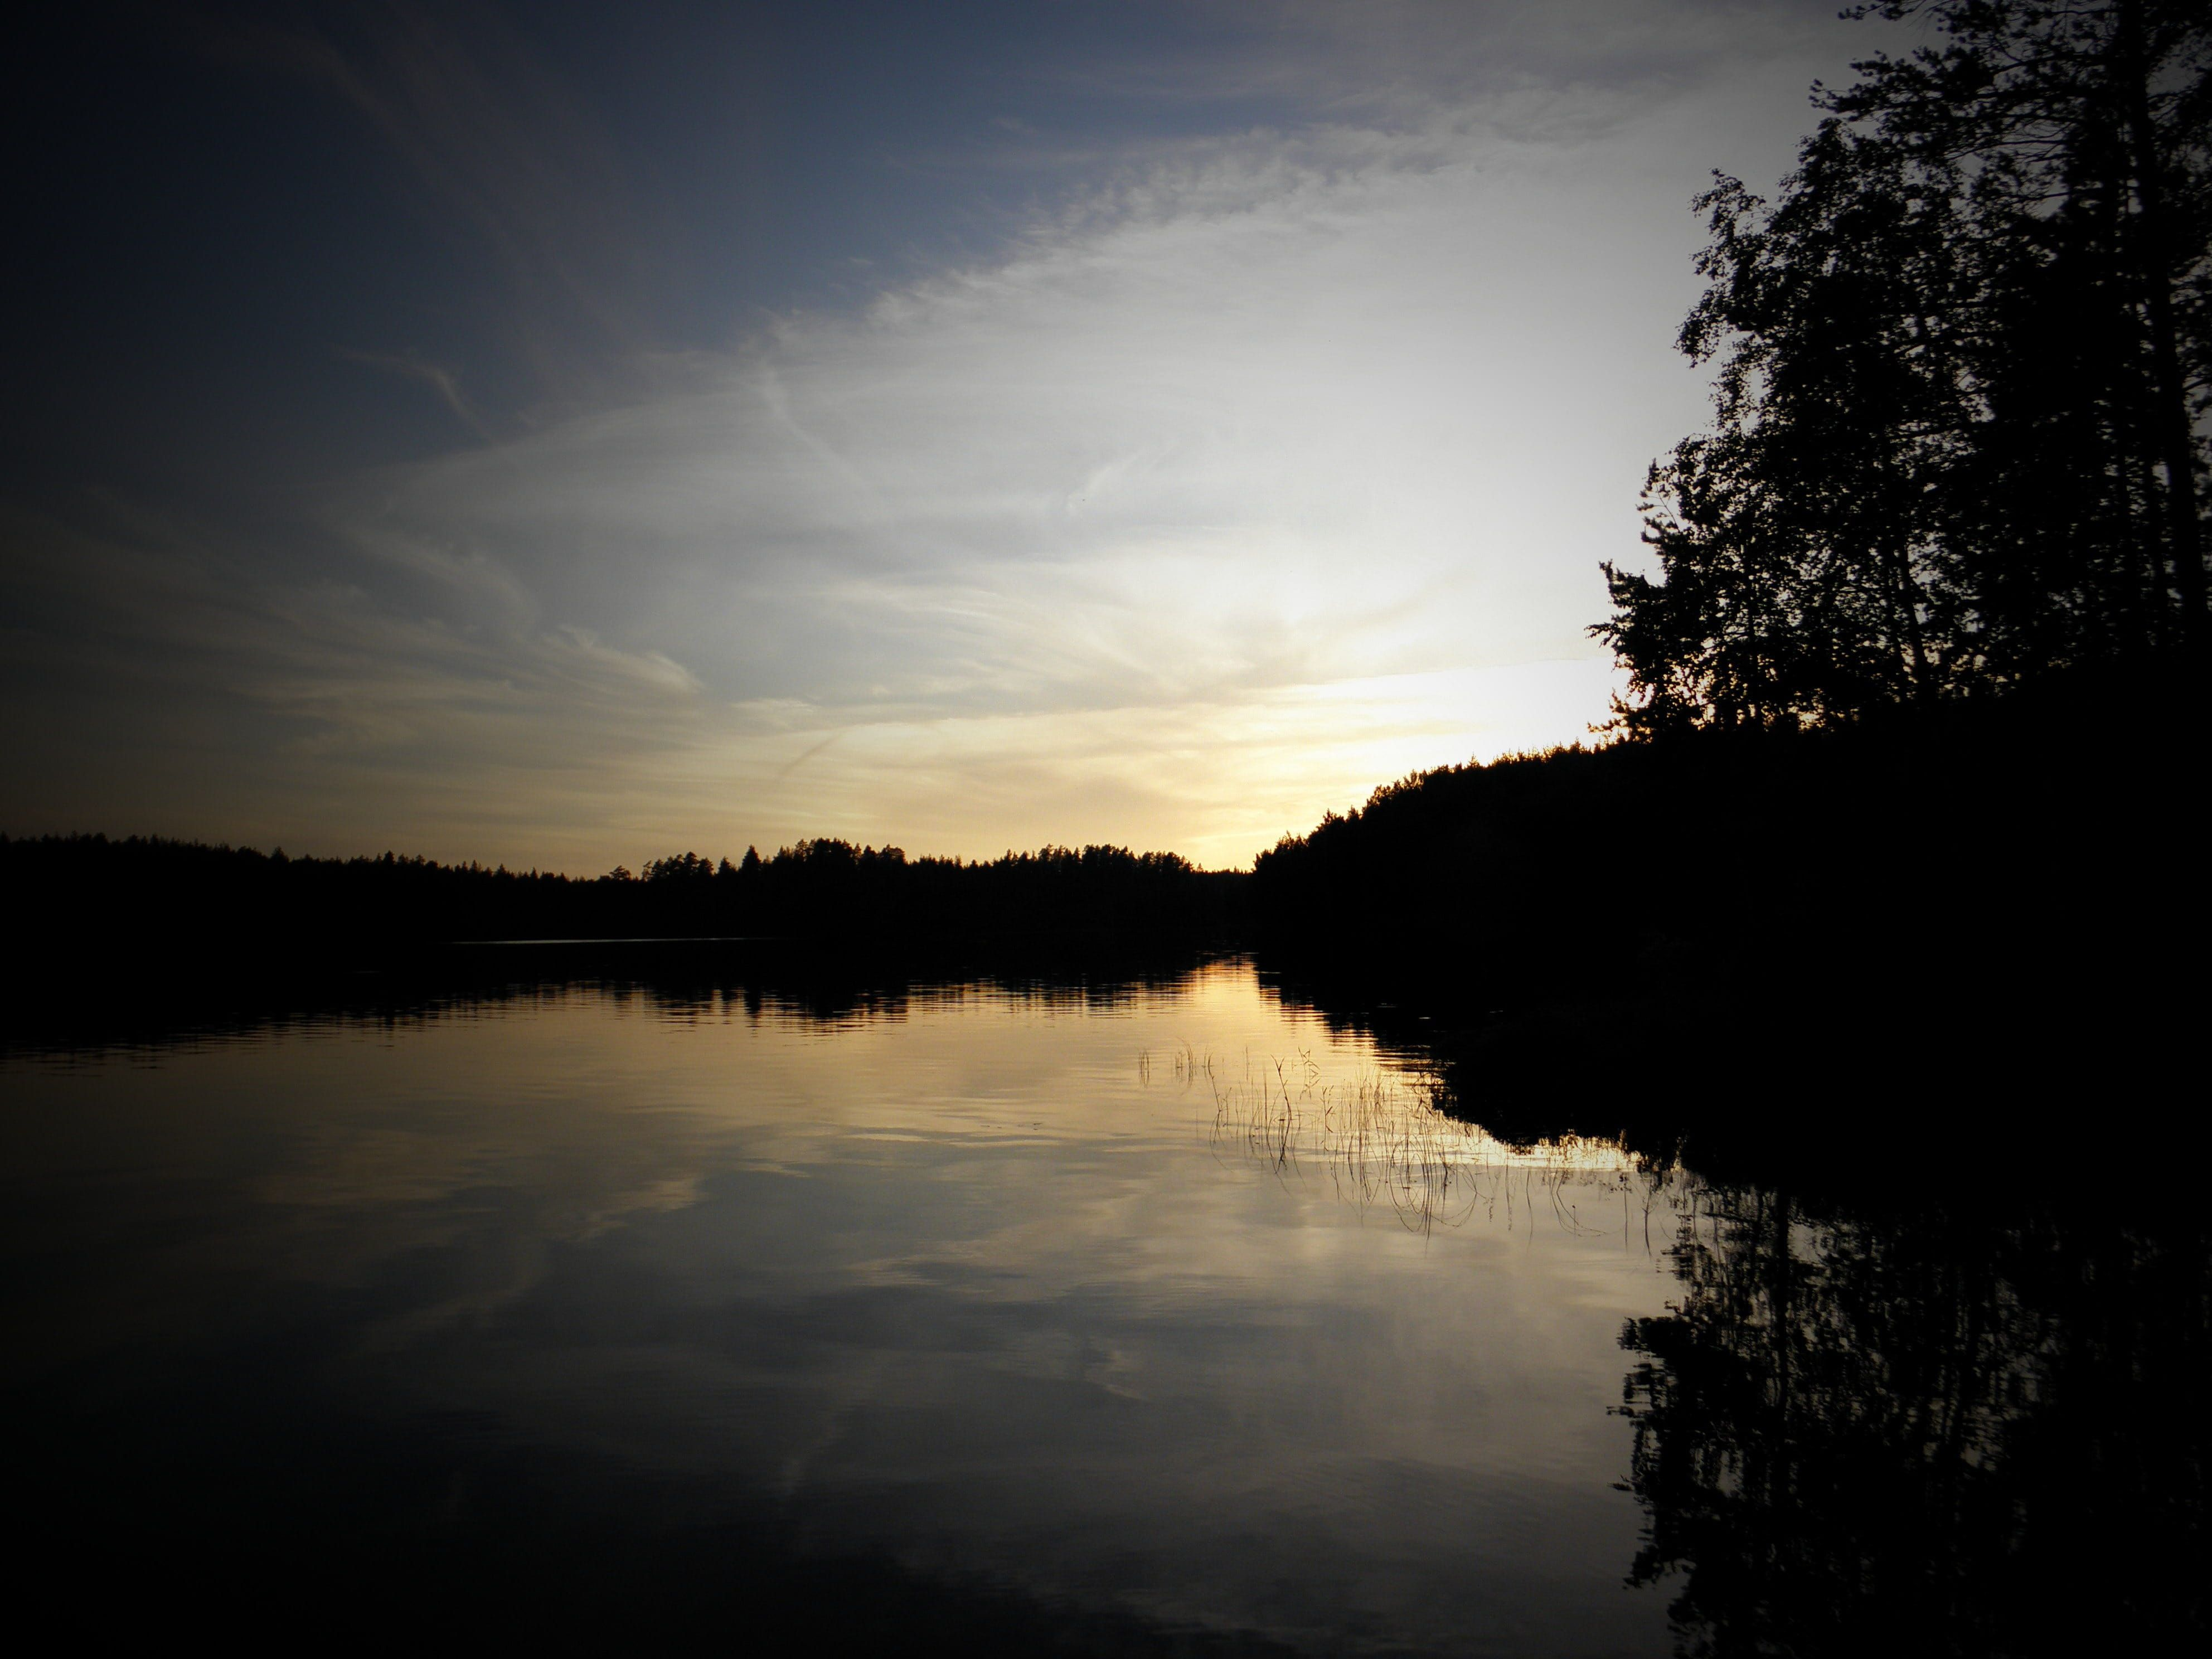 lake in finland tranquil Scene beauty In Nature no People